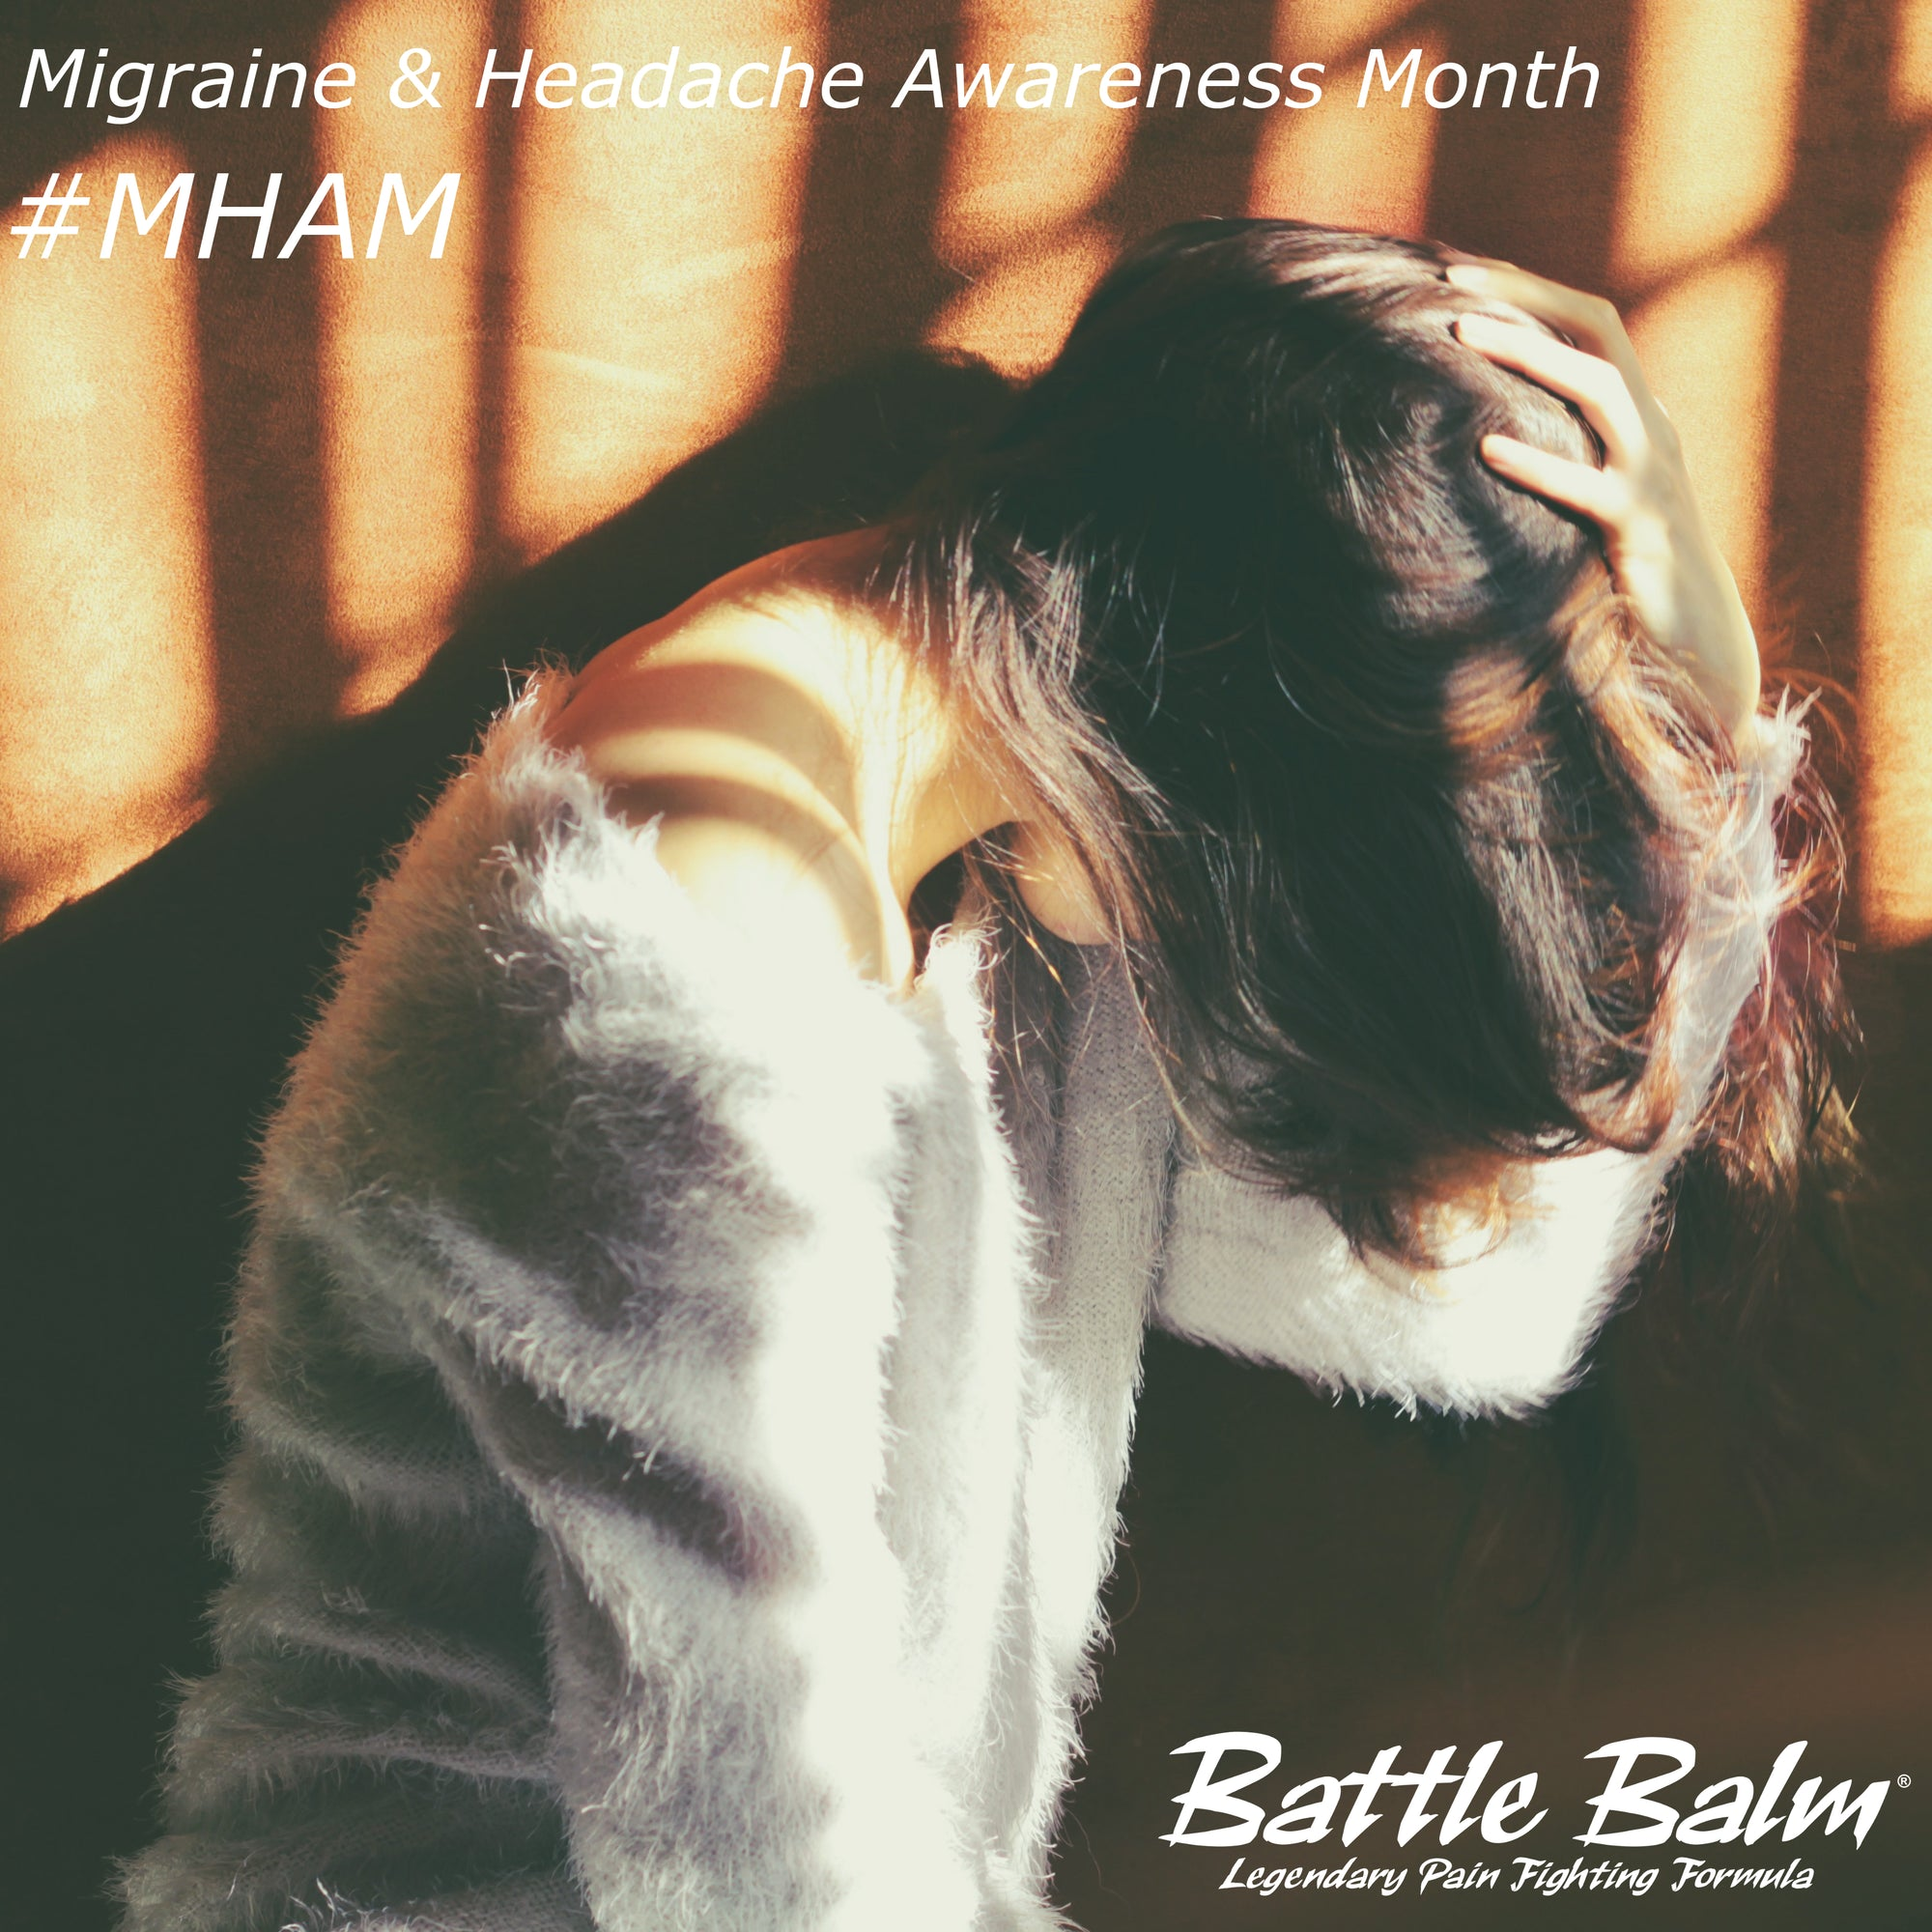 3 Reasons Why Battle Balm is the Best Pain Relief for Migraine Sufferers